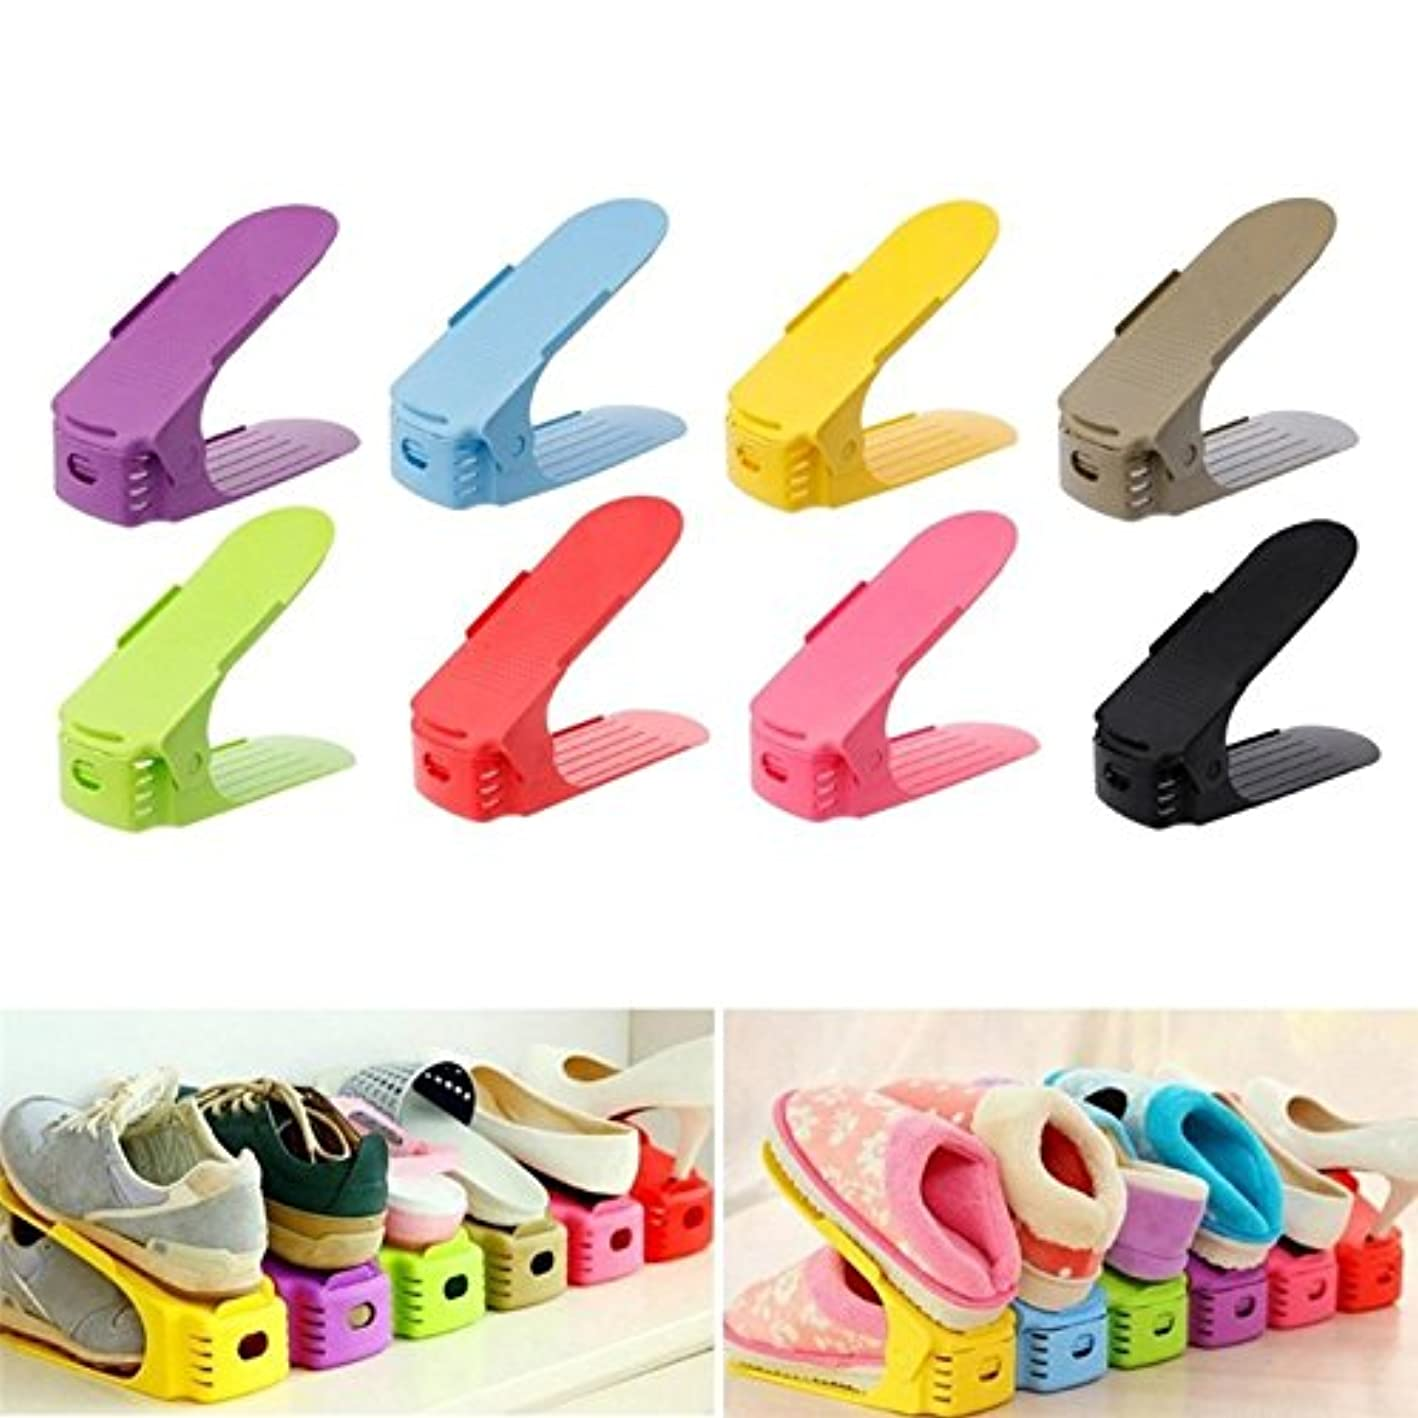 Aosreng 6Pcs Plastic Shoes Storage Rack Shleves Double-Wide Shoe Holder Save Space Shoes Organizer Stand Shelf for Living Room as pic6